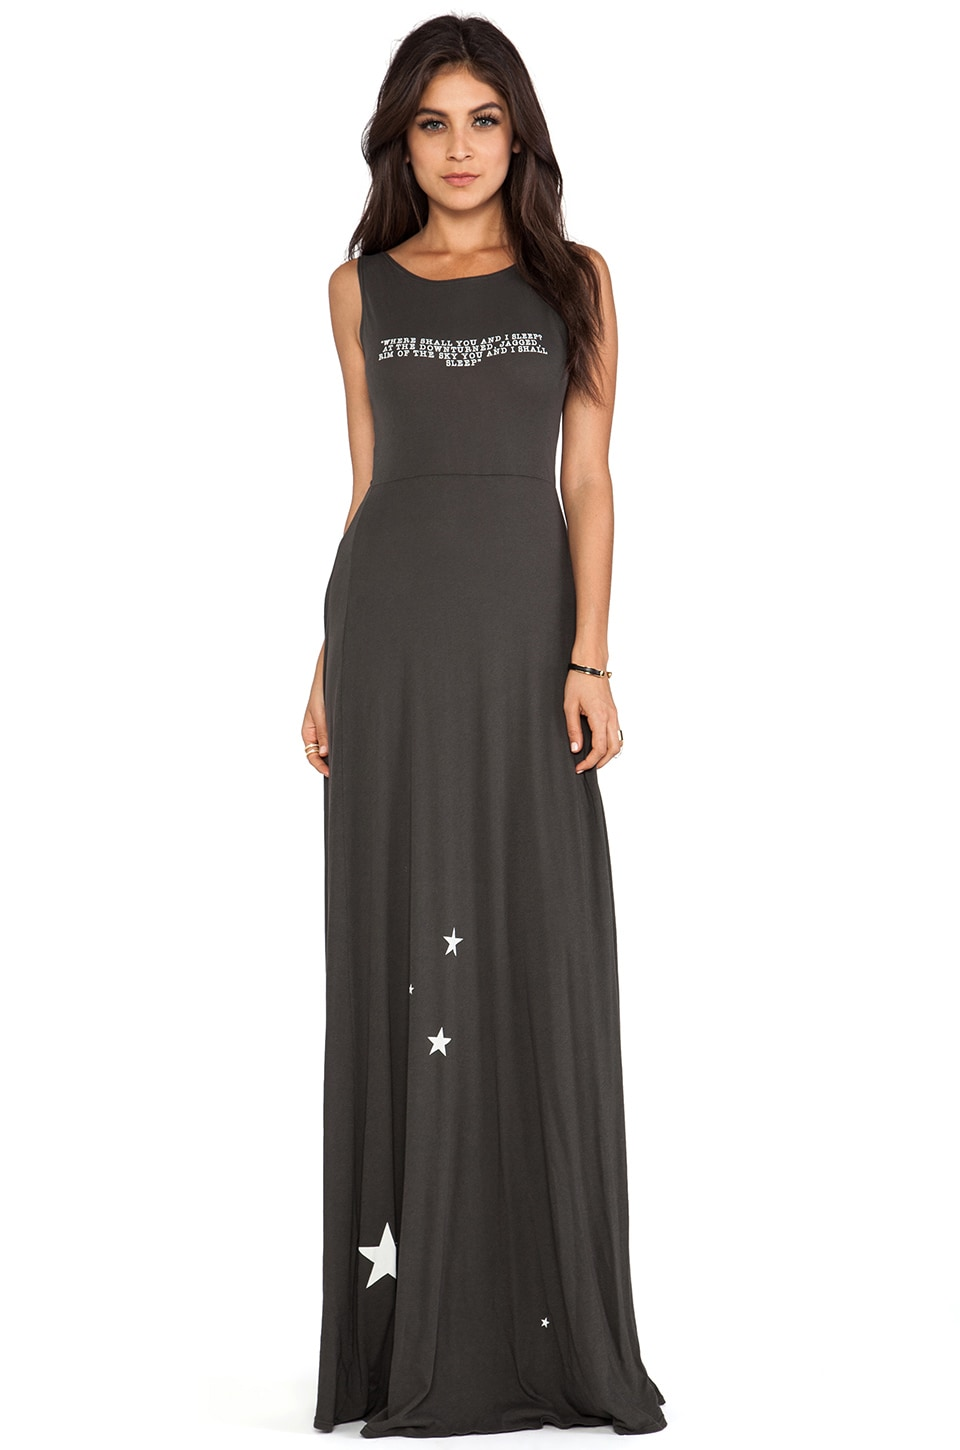 Wildfox Couture You And I Sleep Shipwrecked Maxi in Dirty Black